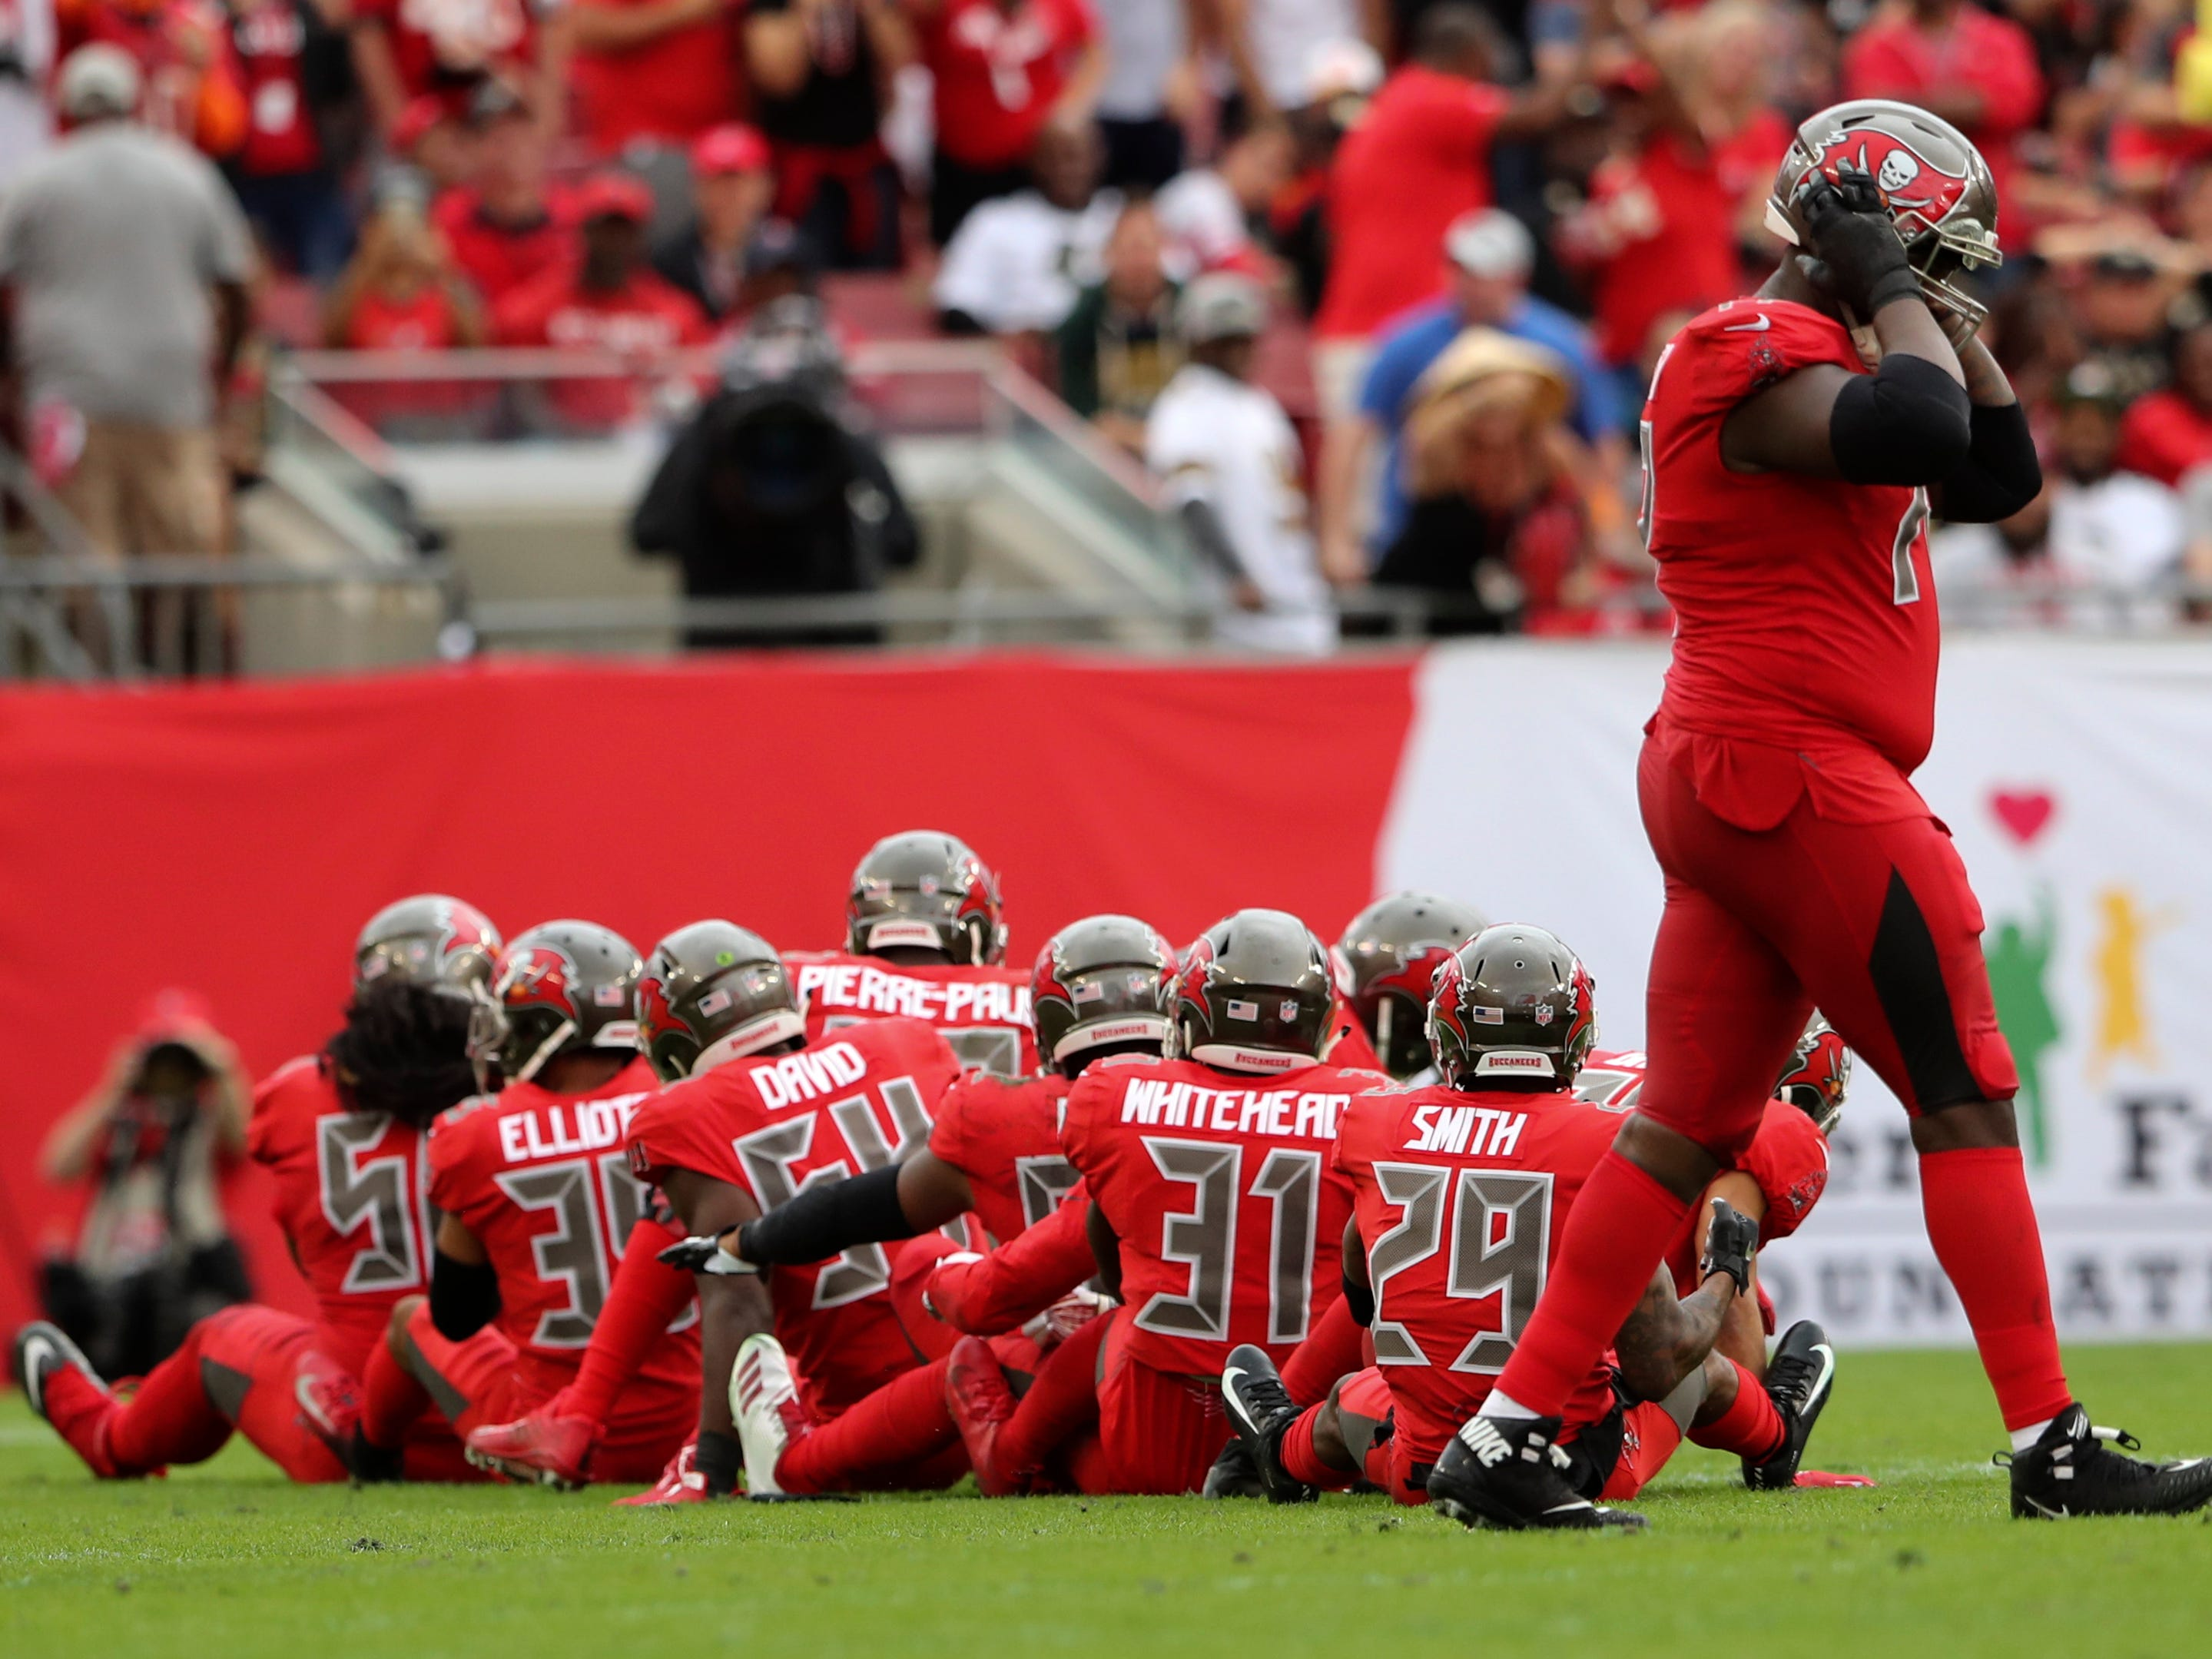 The Tampa Bay Buccaneers defense celebrates an interception during the first half against the New Orleans Saints at Raymond James Stadium.